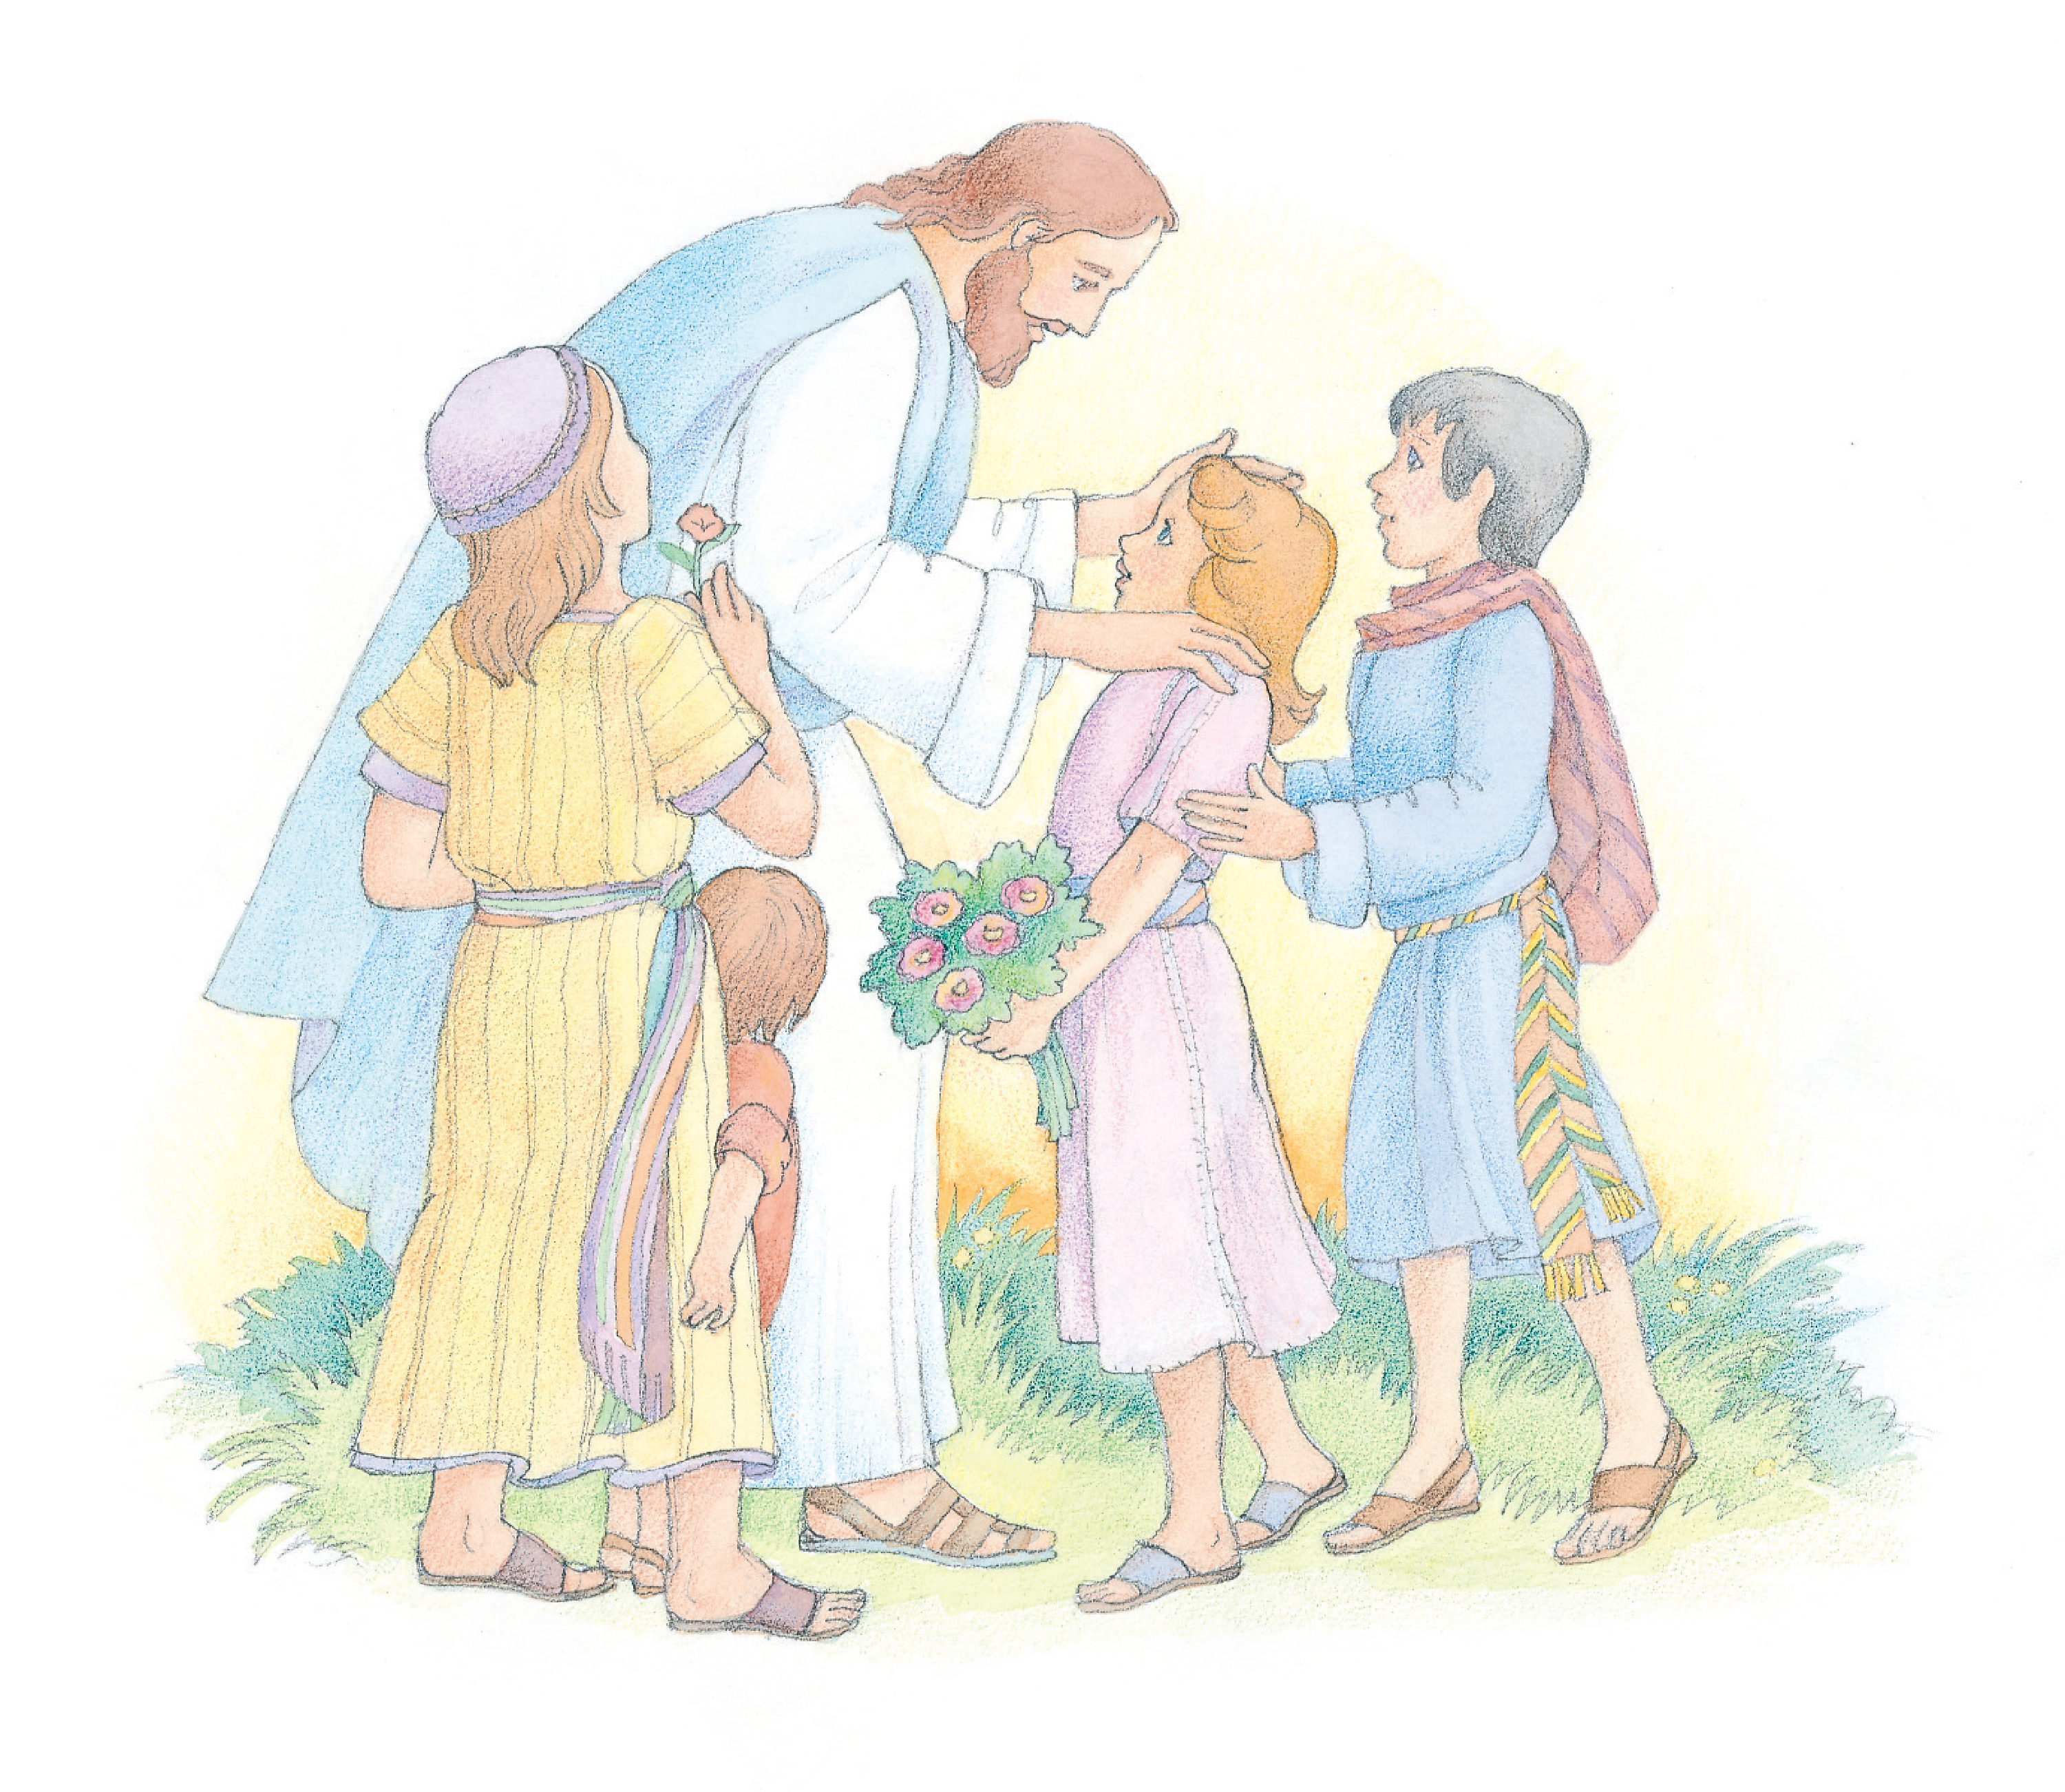 """Christ standing and interacting with four young children. From the Children's Songbook, page 80, """"Had I Been a Child""""; watercolor illustration by Phyllis Luch."""